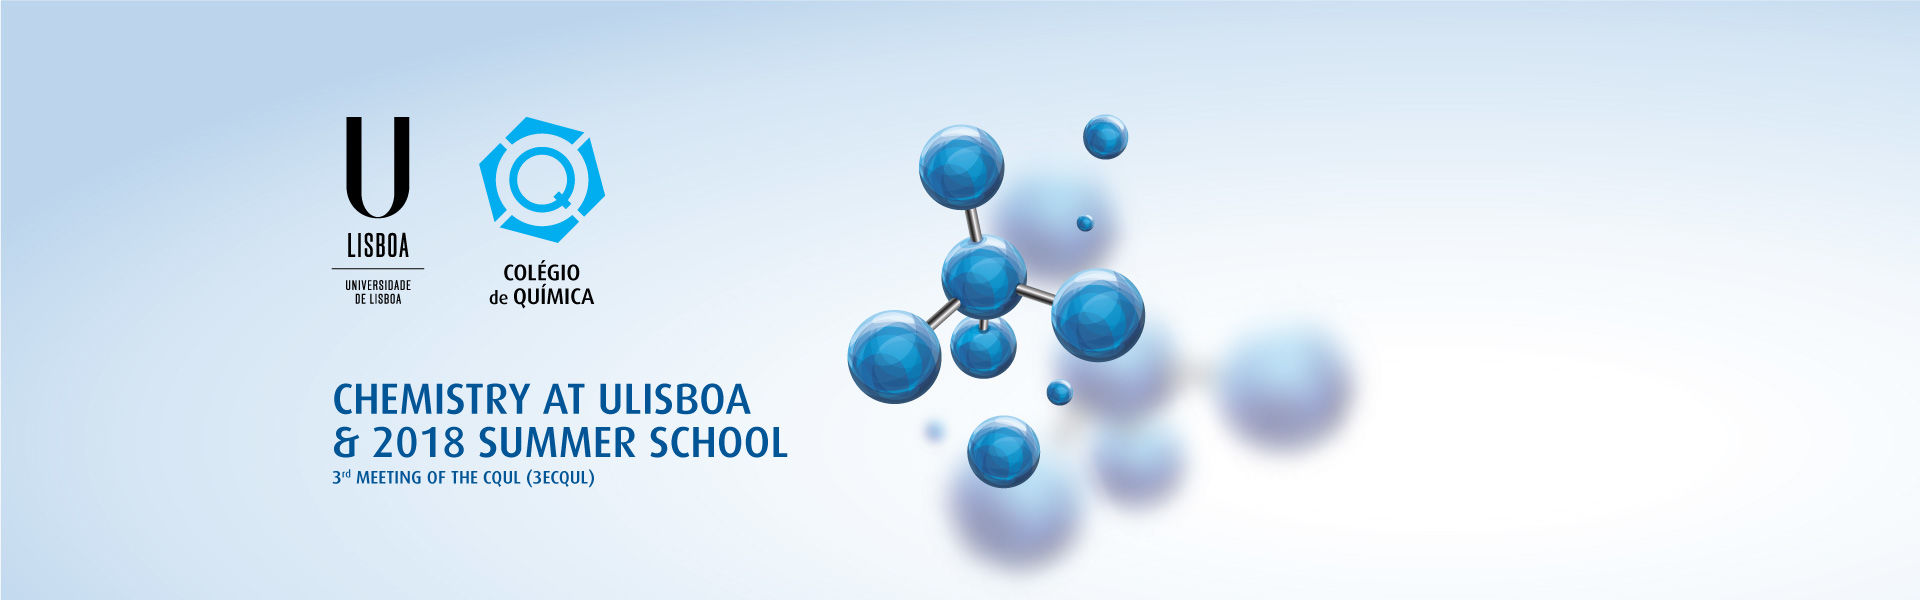 3rd Meeting of the College of Chemistry (3ECQUL)